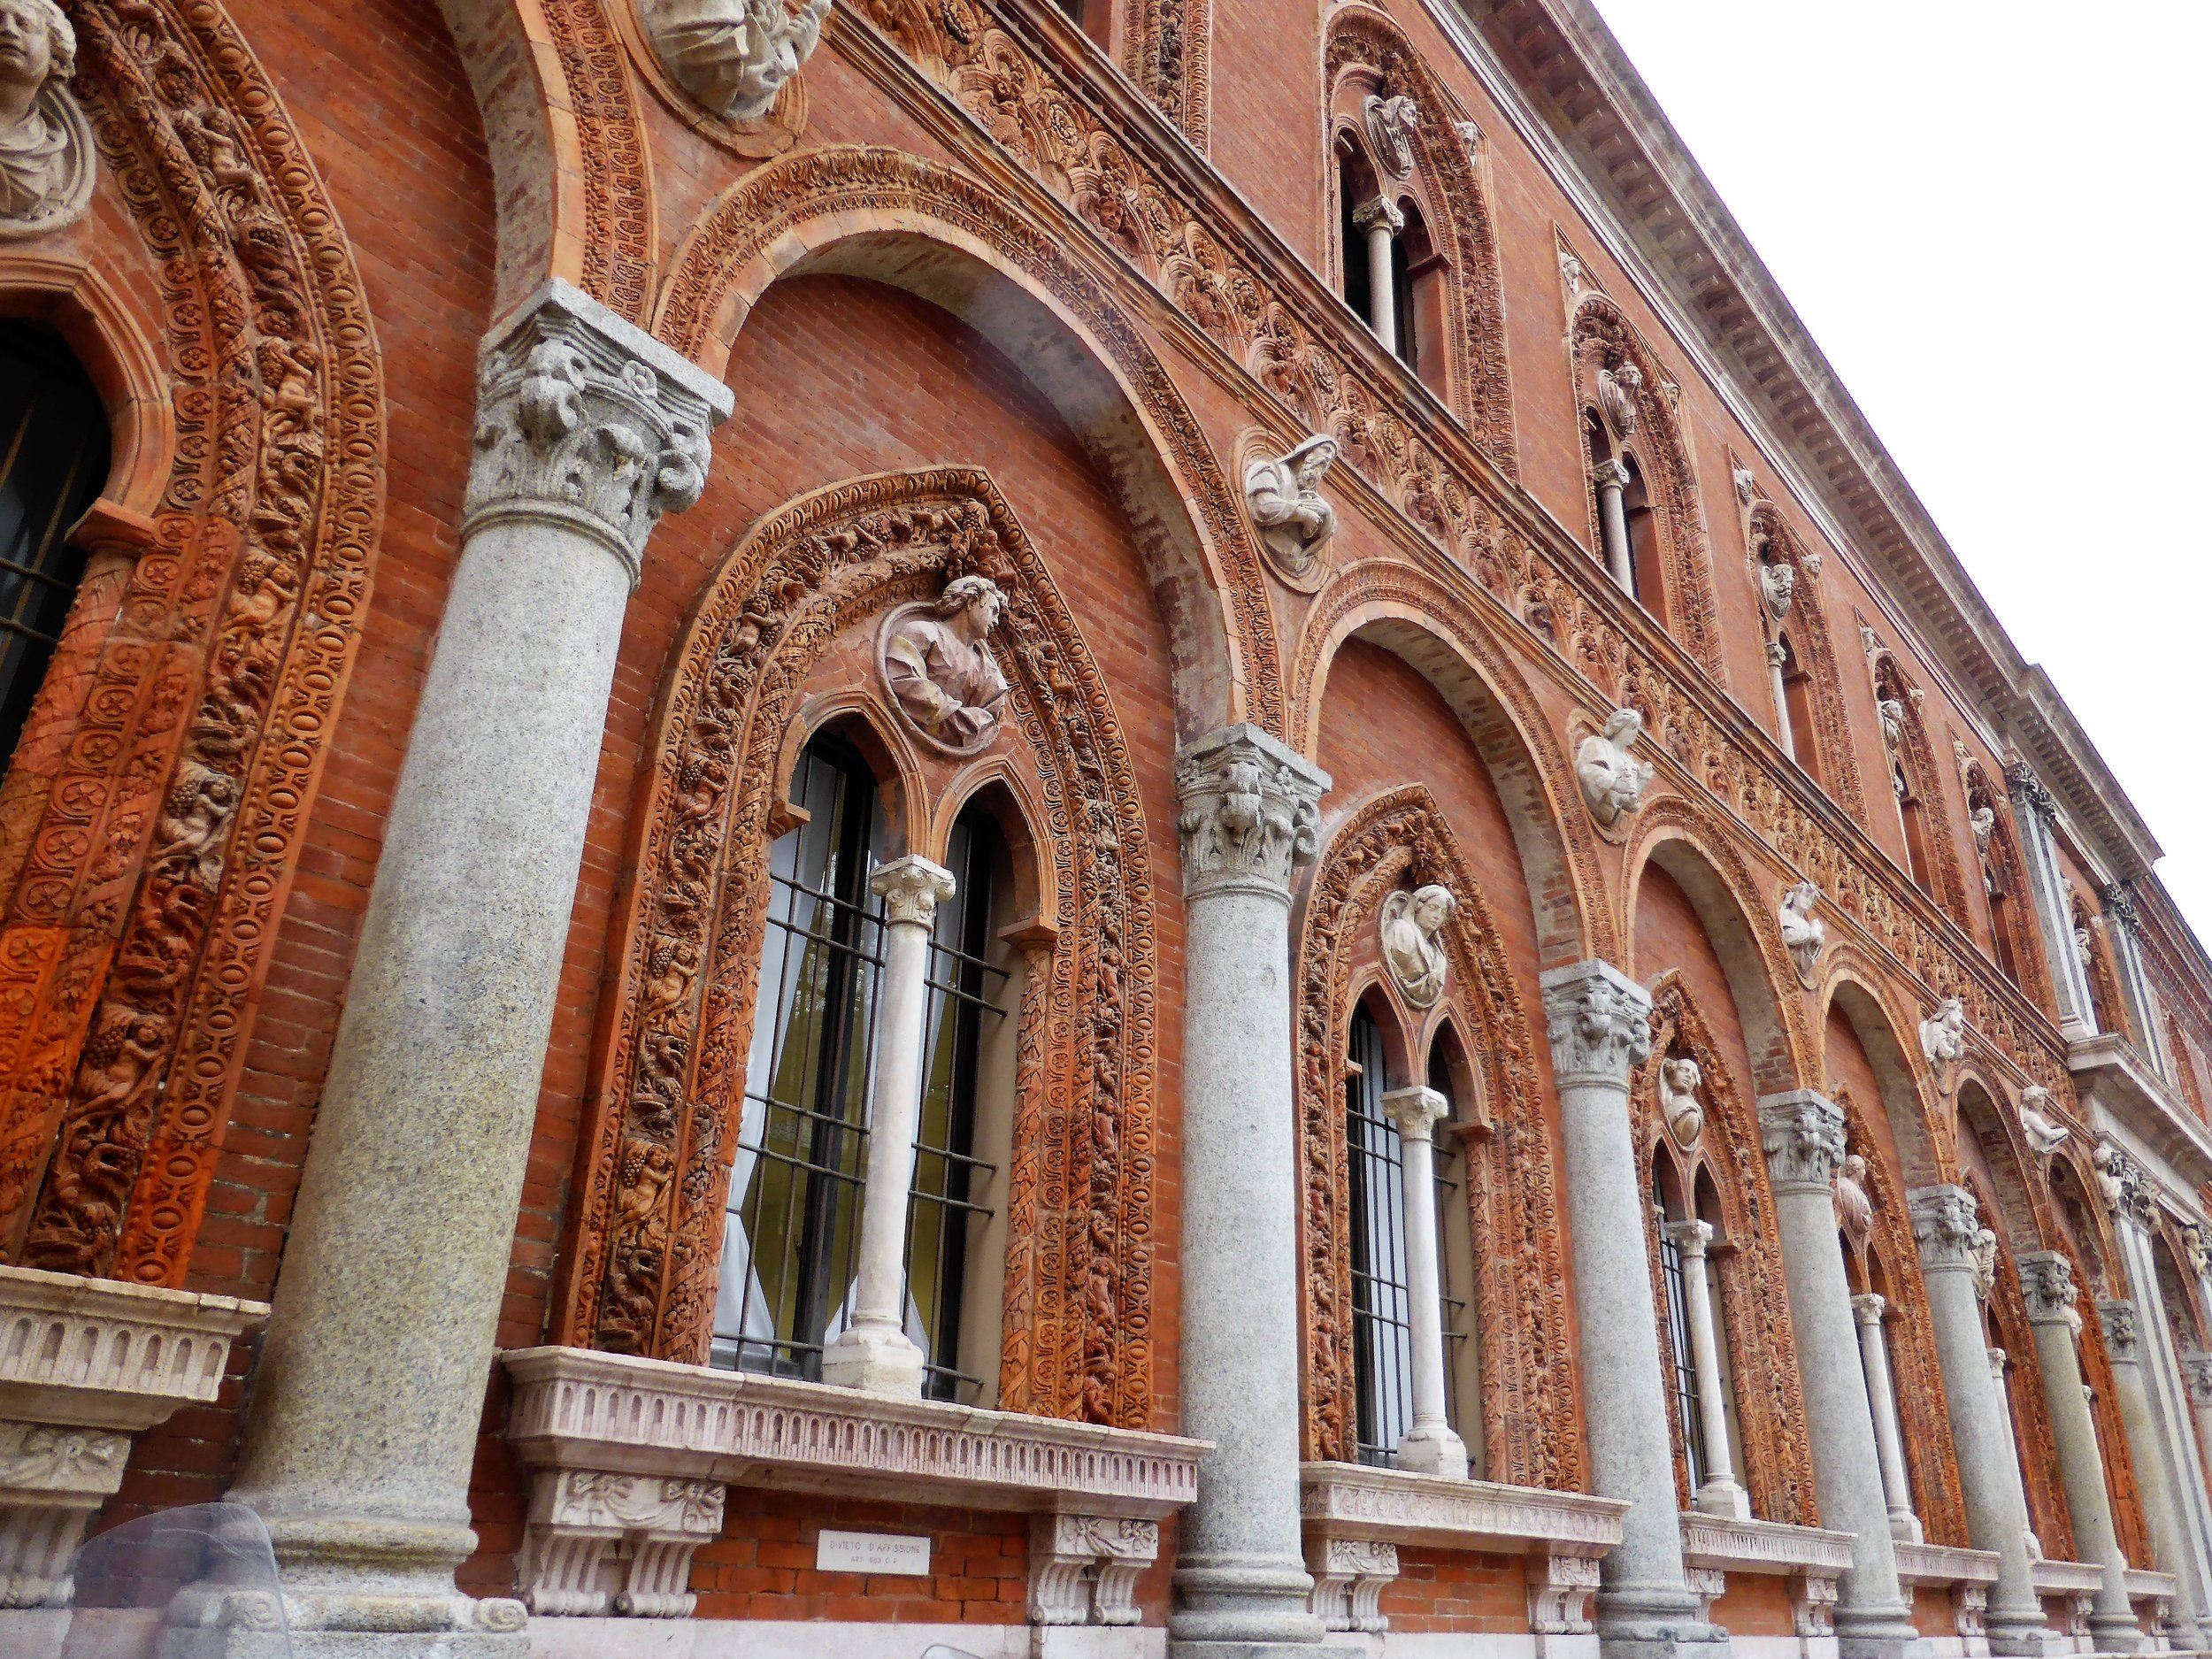 Sforzinda real time: Façade of former Ospedale Maggiore, Milan. Photography by the author